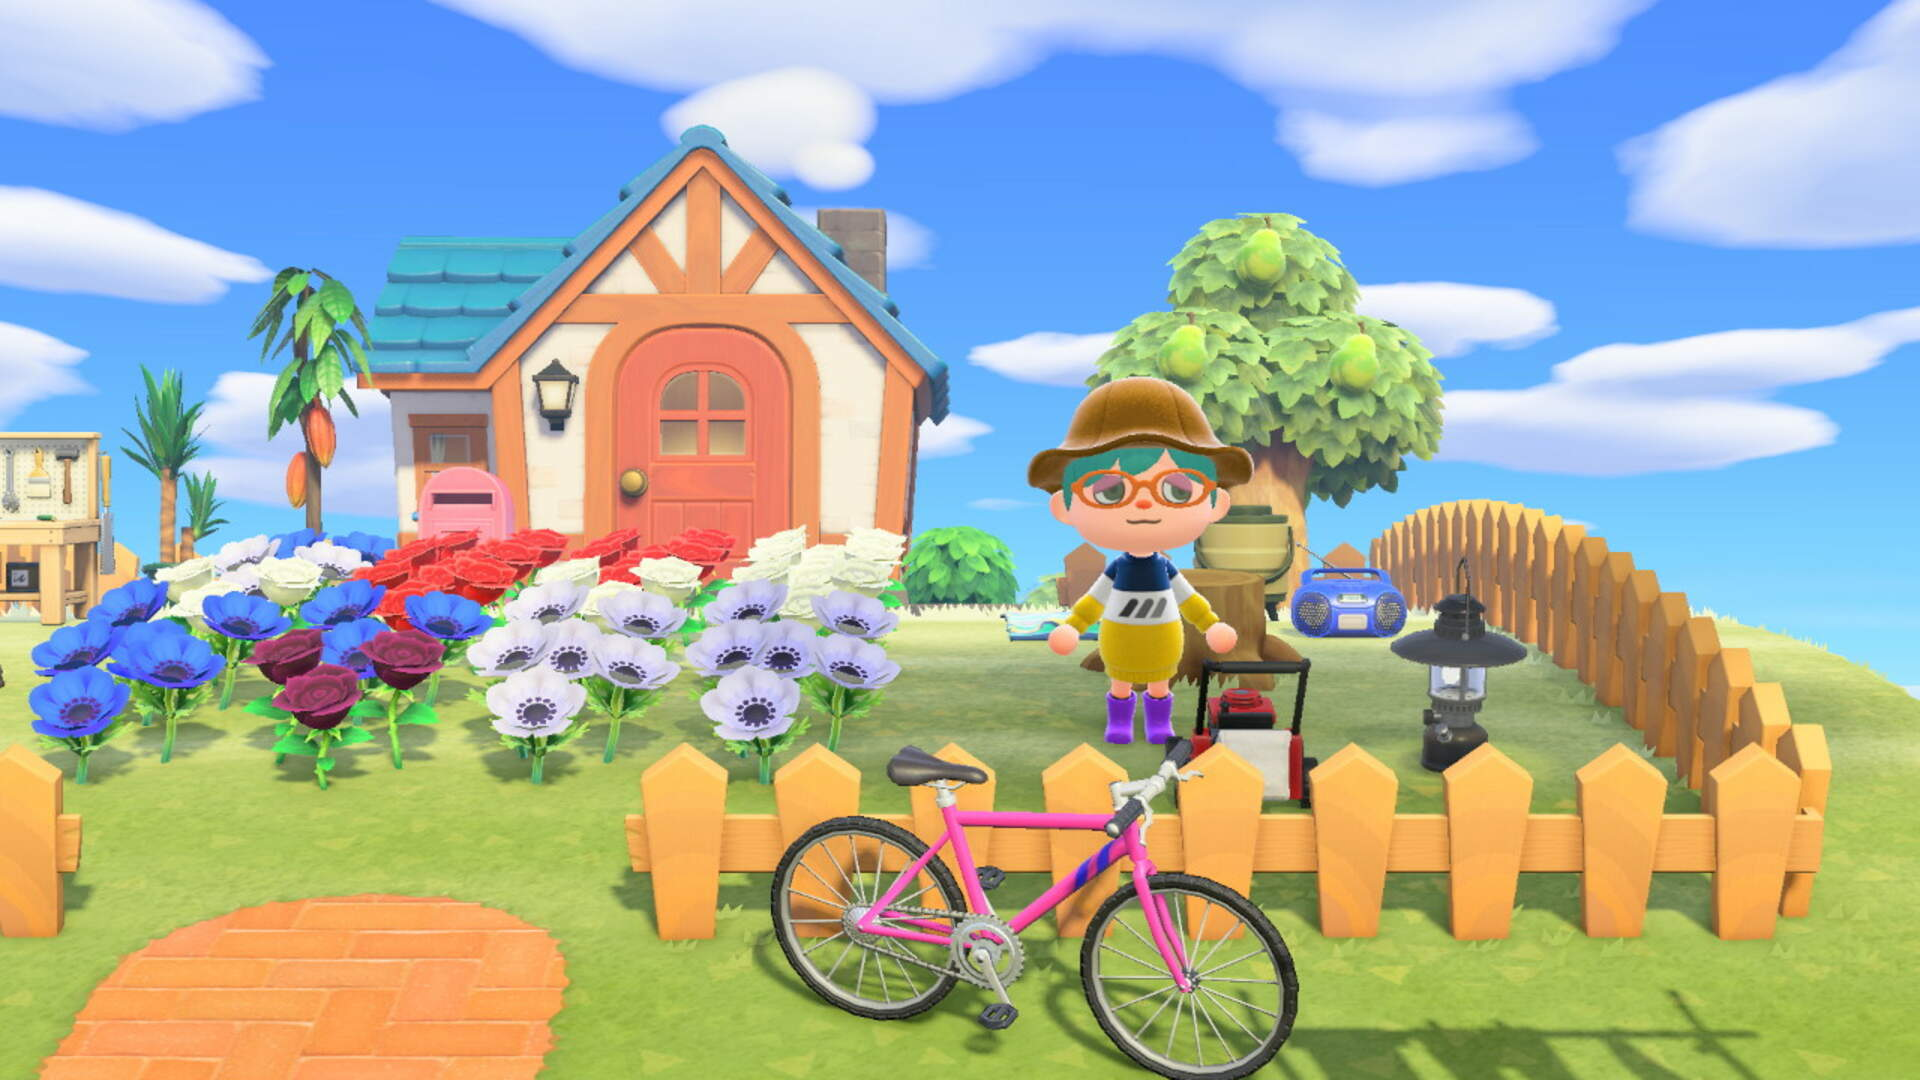 In Japan, Animal Crossing: New Horizons Is the Biggest New Game for the Switch